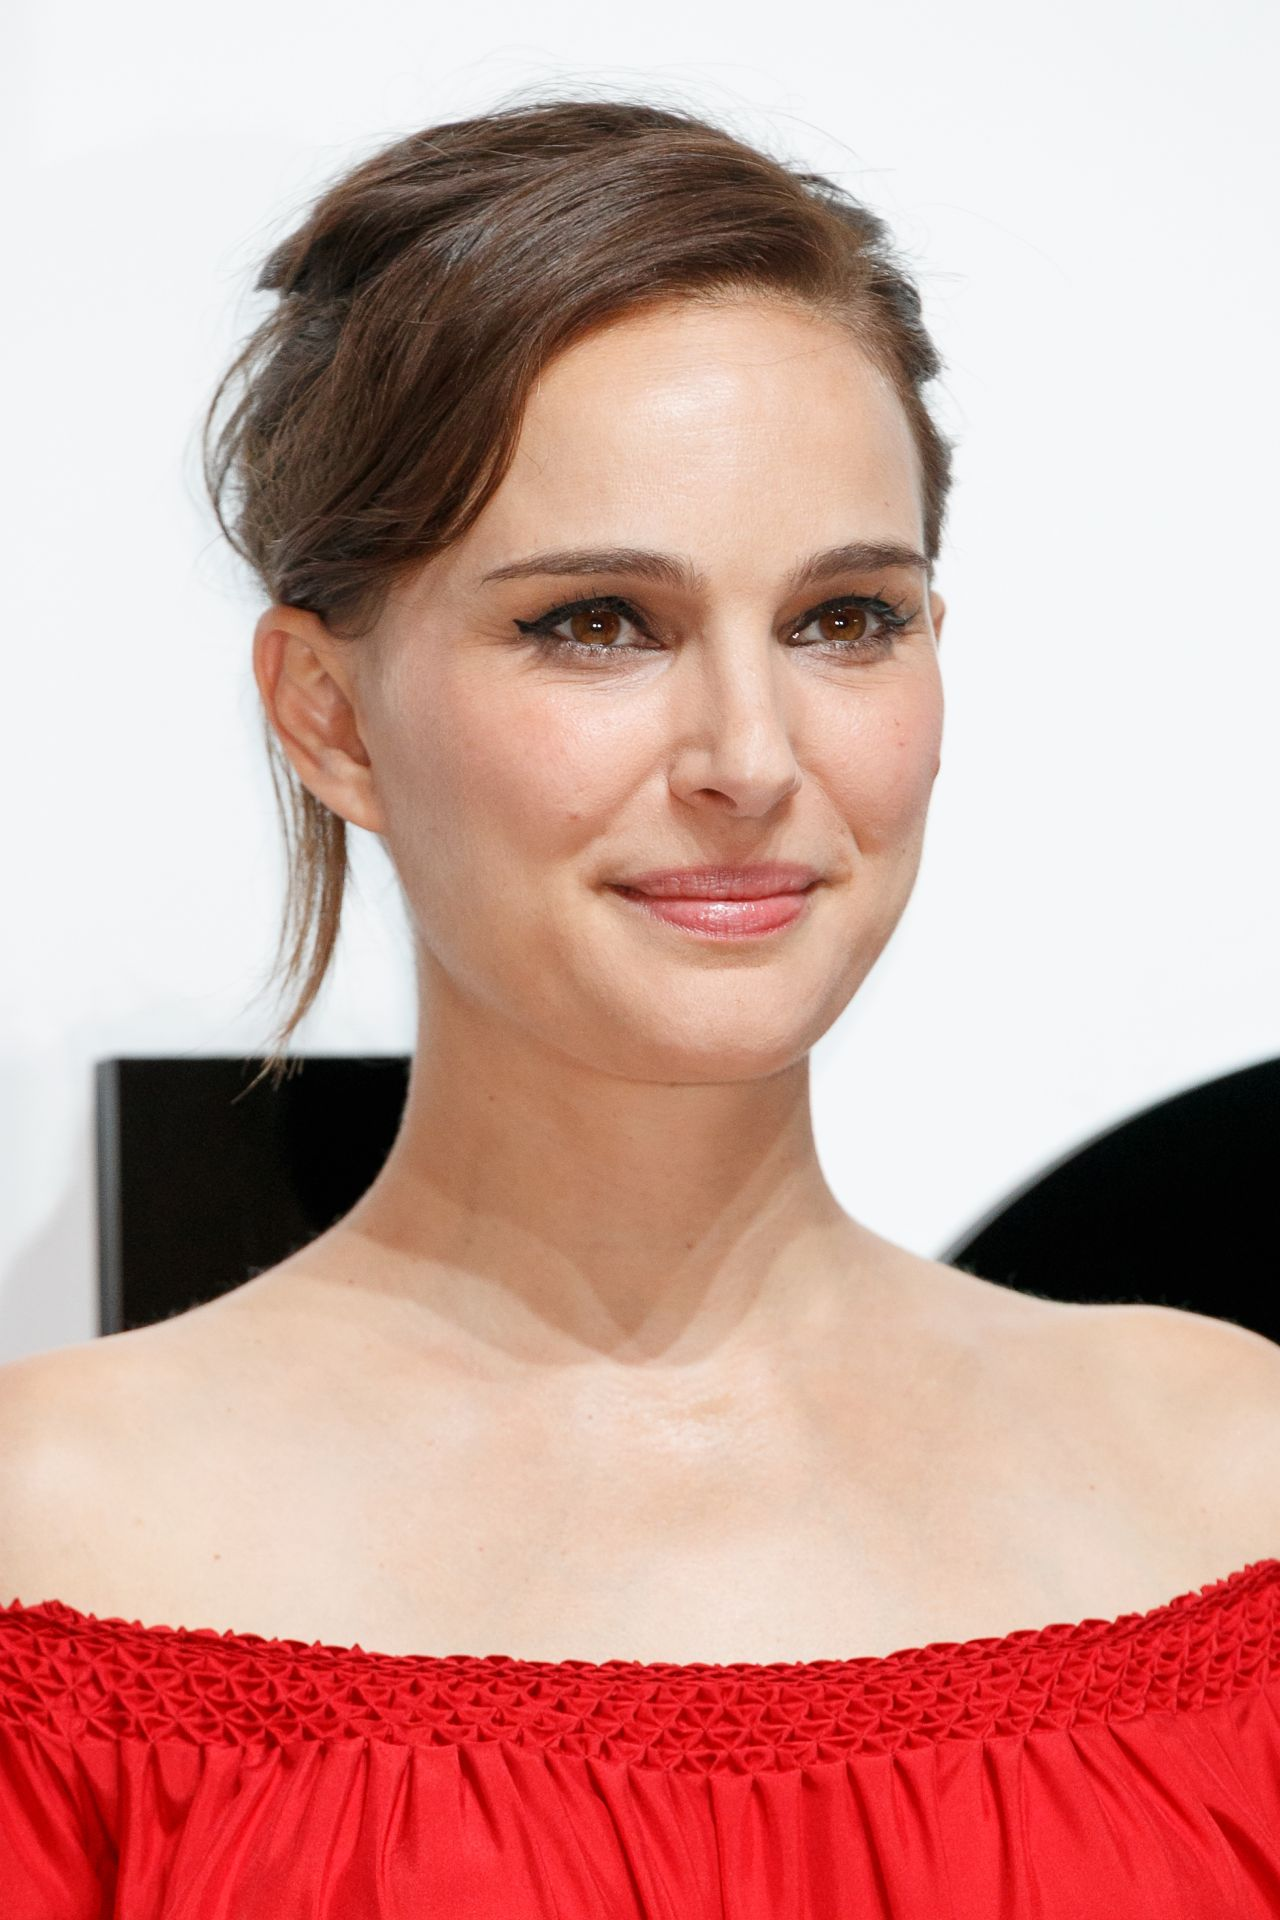 Natalie Portman - Dior for Love' Event at Terrada ... Natalie Portman